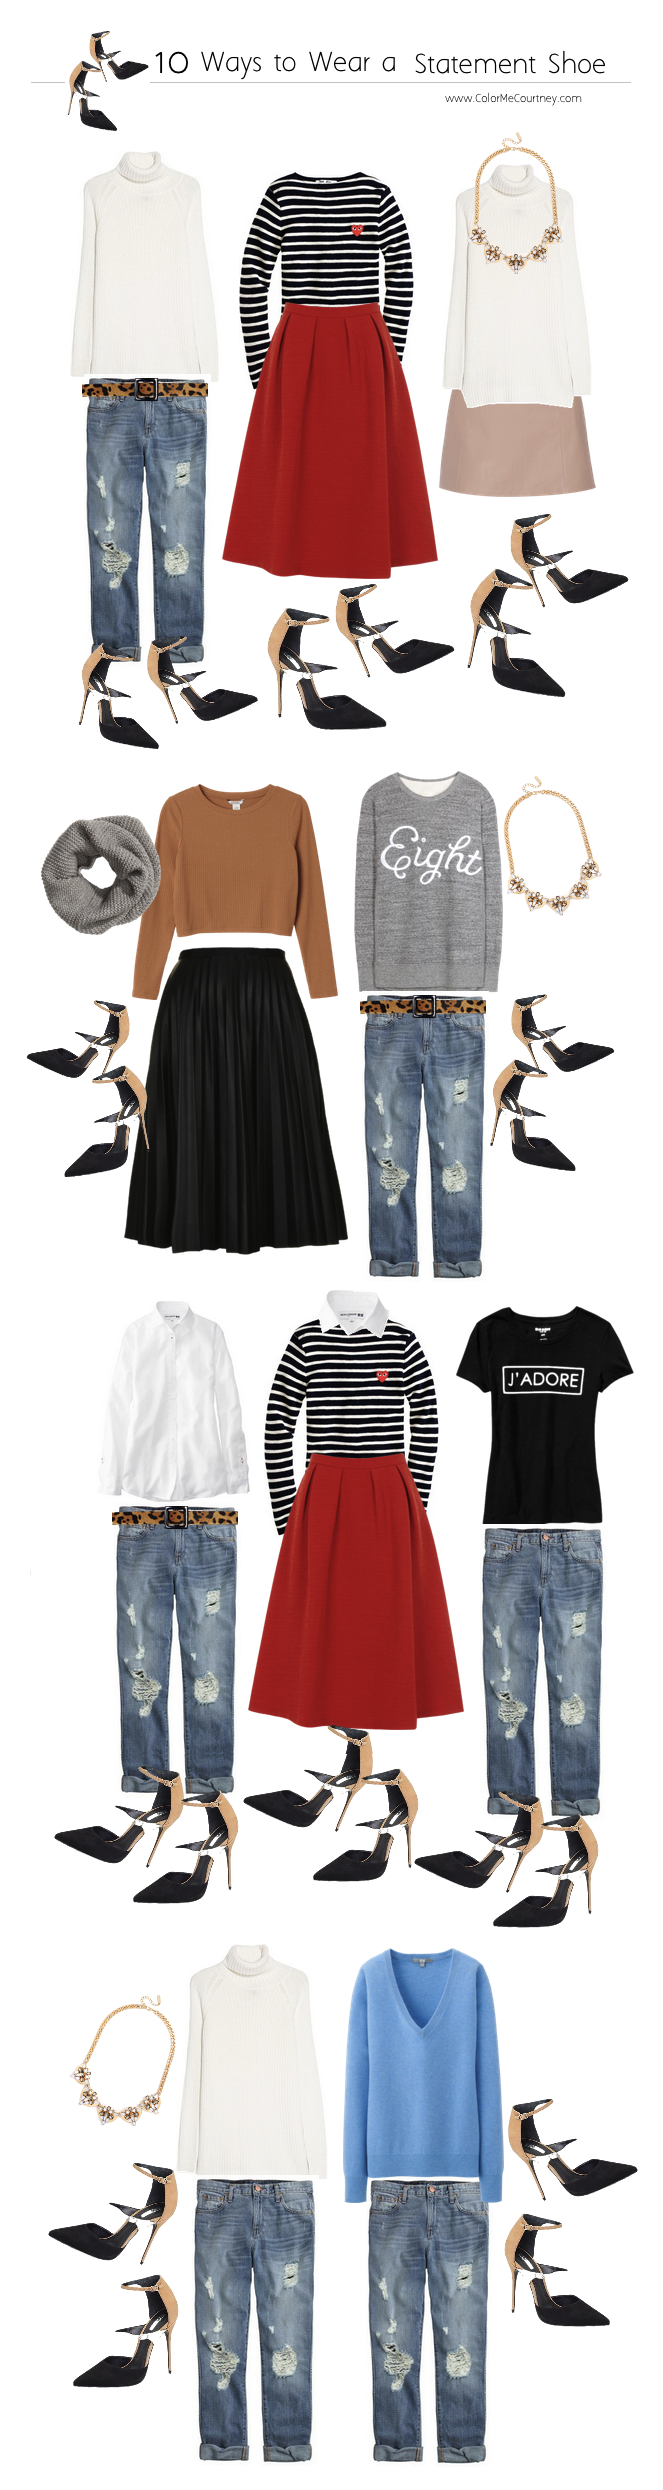 100 outfits create 100 outfits from 10 pieces 10 pieces 100 outfits what to wear for fall fall style guide fall shopping guide what to buy fro fall fall fashion fall fashion guide how to dress for fall what to wear for fall fall fashion guide how to wear a plaid bomber jacket 10 ways to wear a bomber jacket ten ways to wear